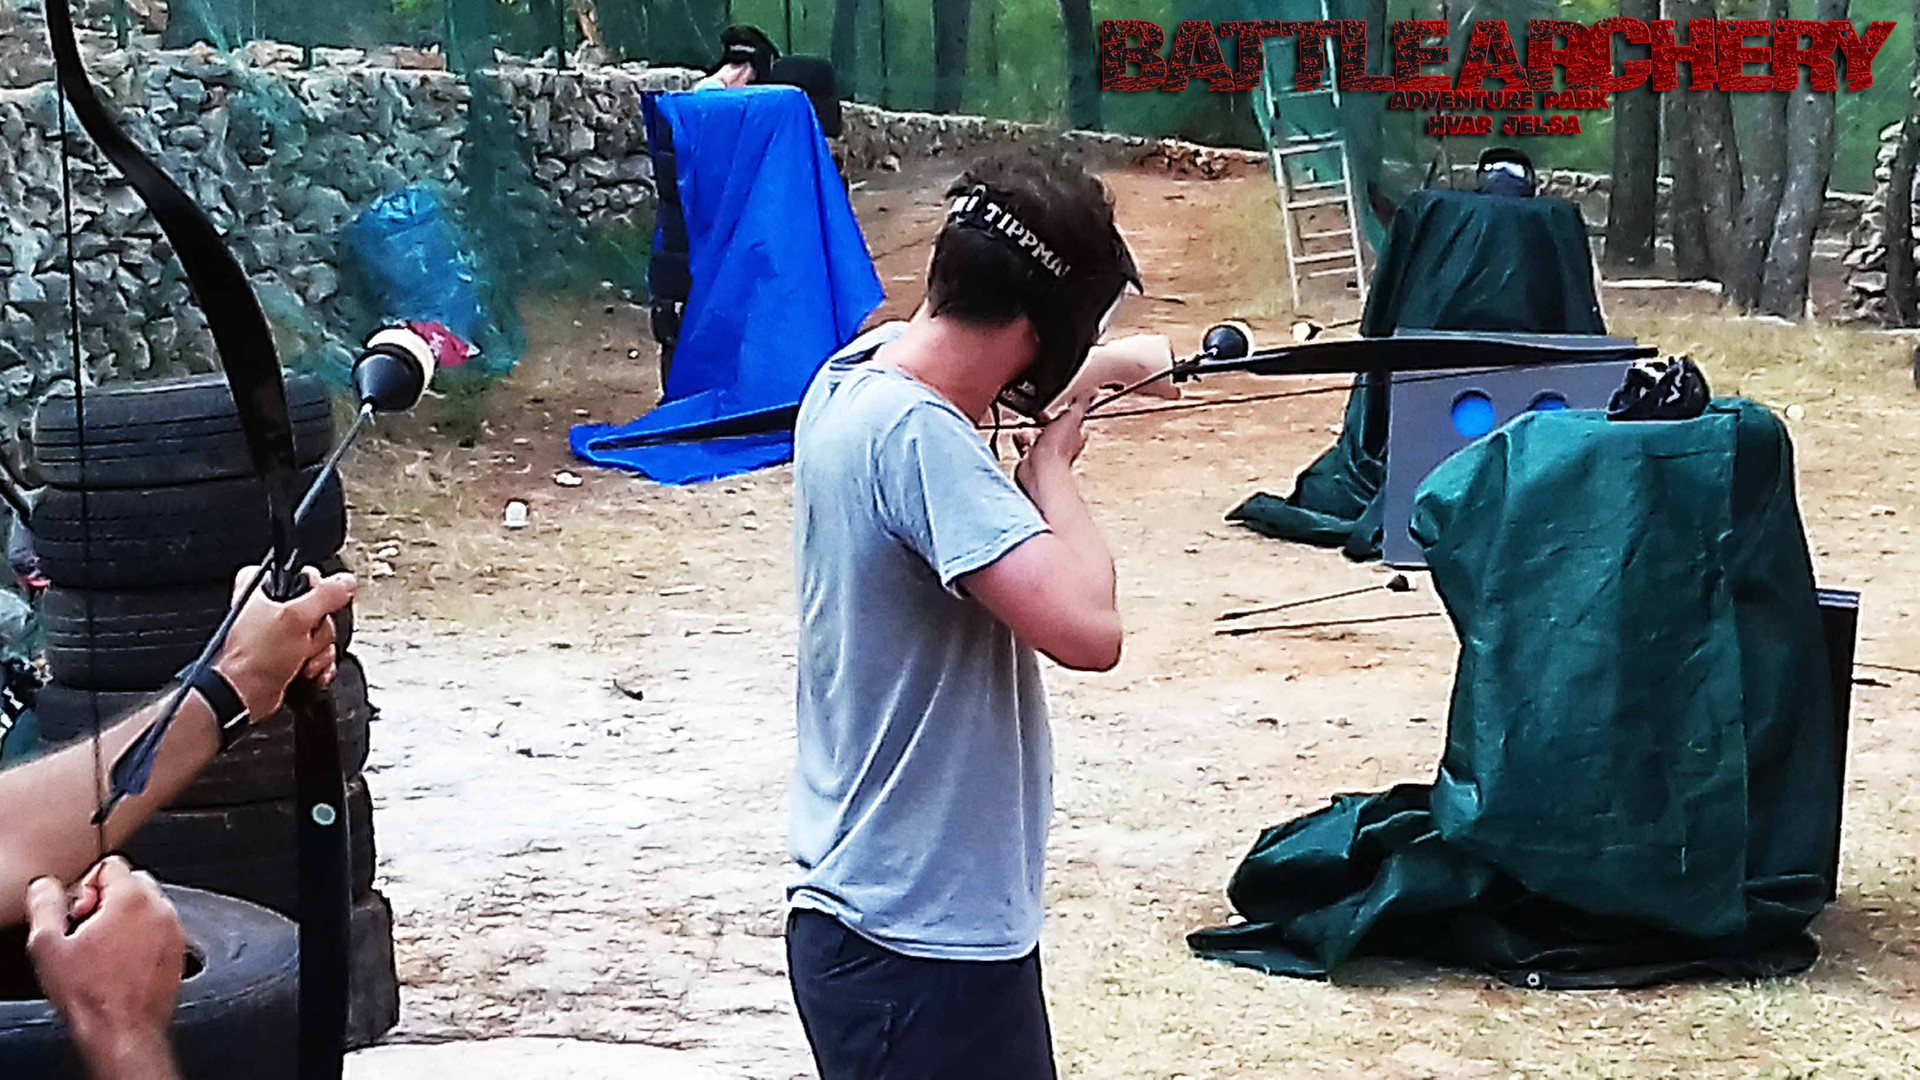 BATTLE ARCHERY HVAR - ACTIVITIES